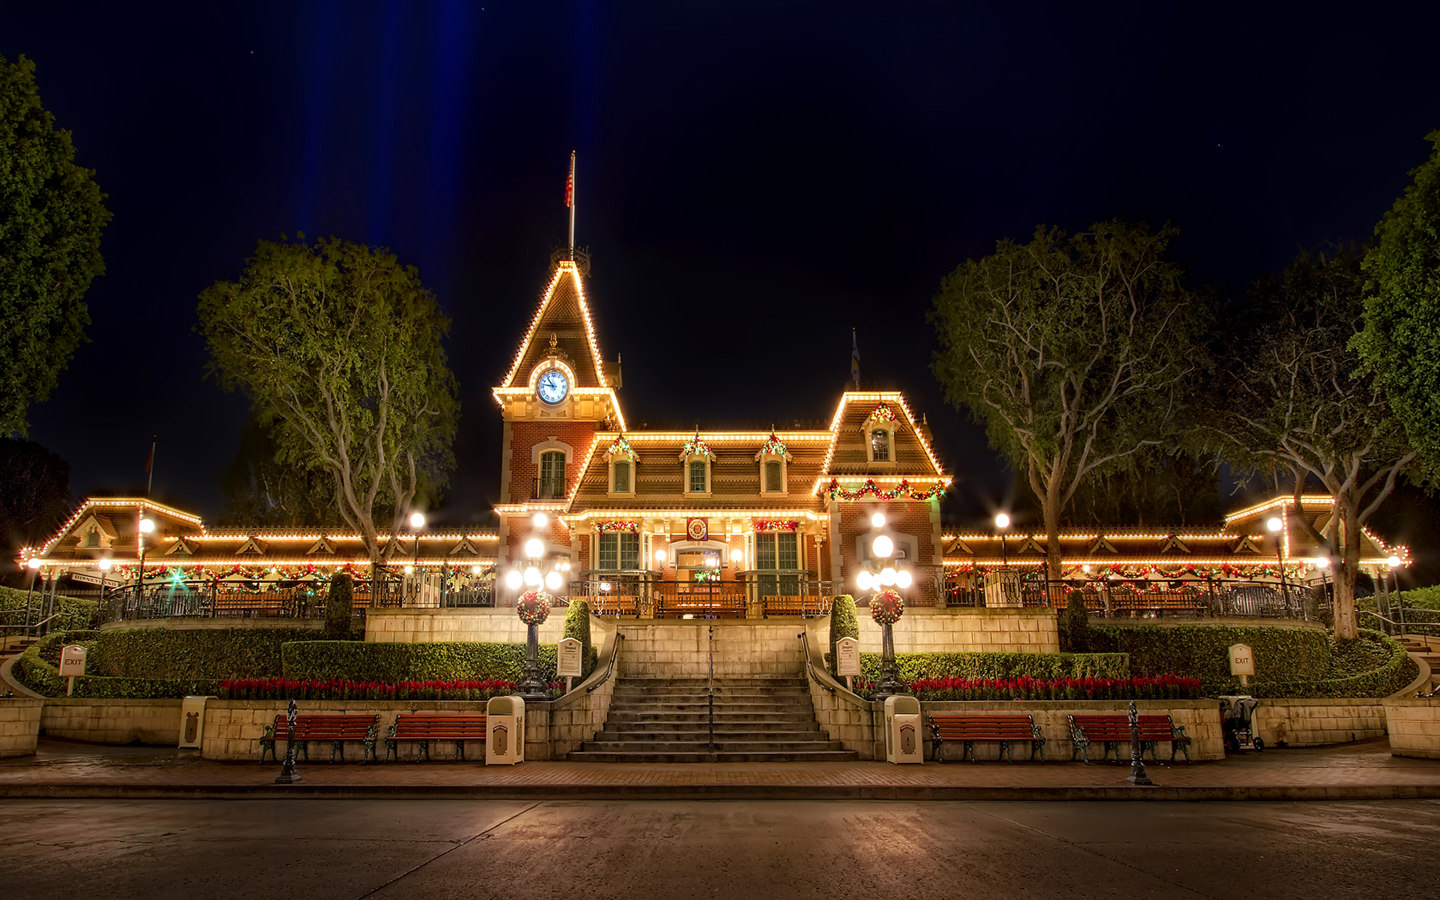 Disneyland Vacations Disneyland Fantasy Christmas Holidays 1440x900